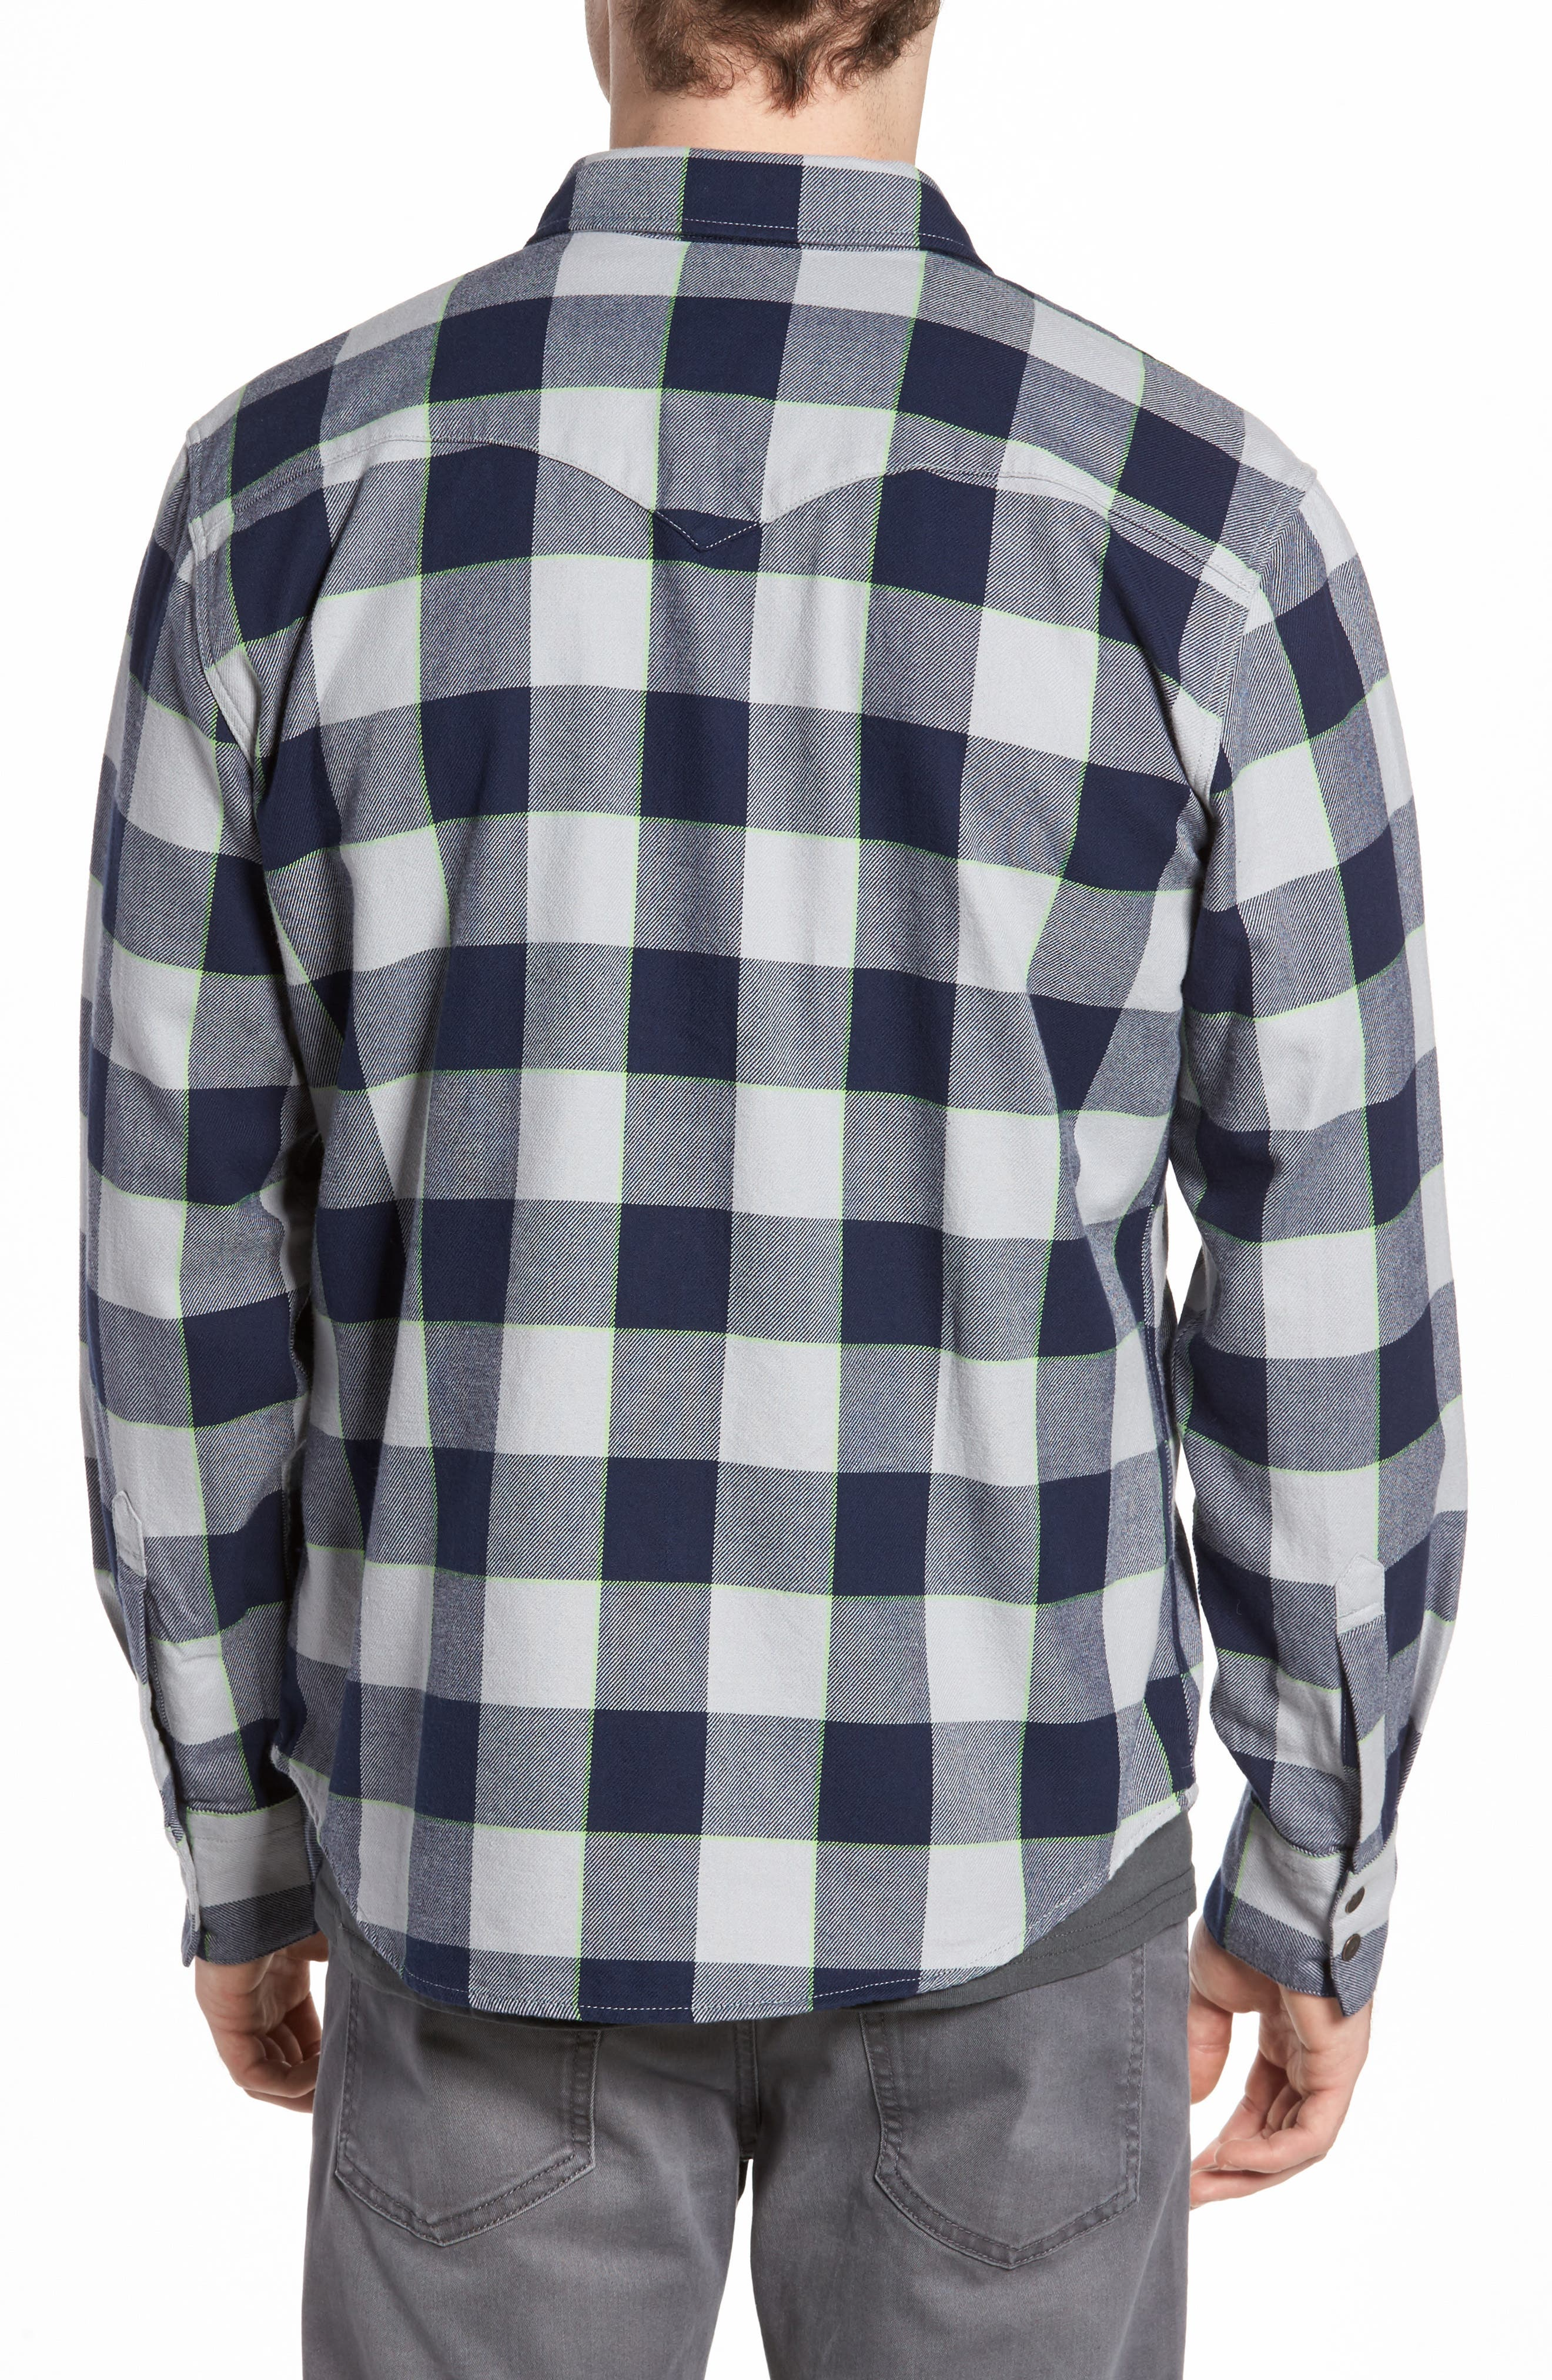 NFL Seahawks - Barstow Plaid Western Shirt,                             Alternate thumbnail 2, color,                             Blue Plaid